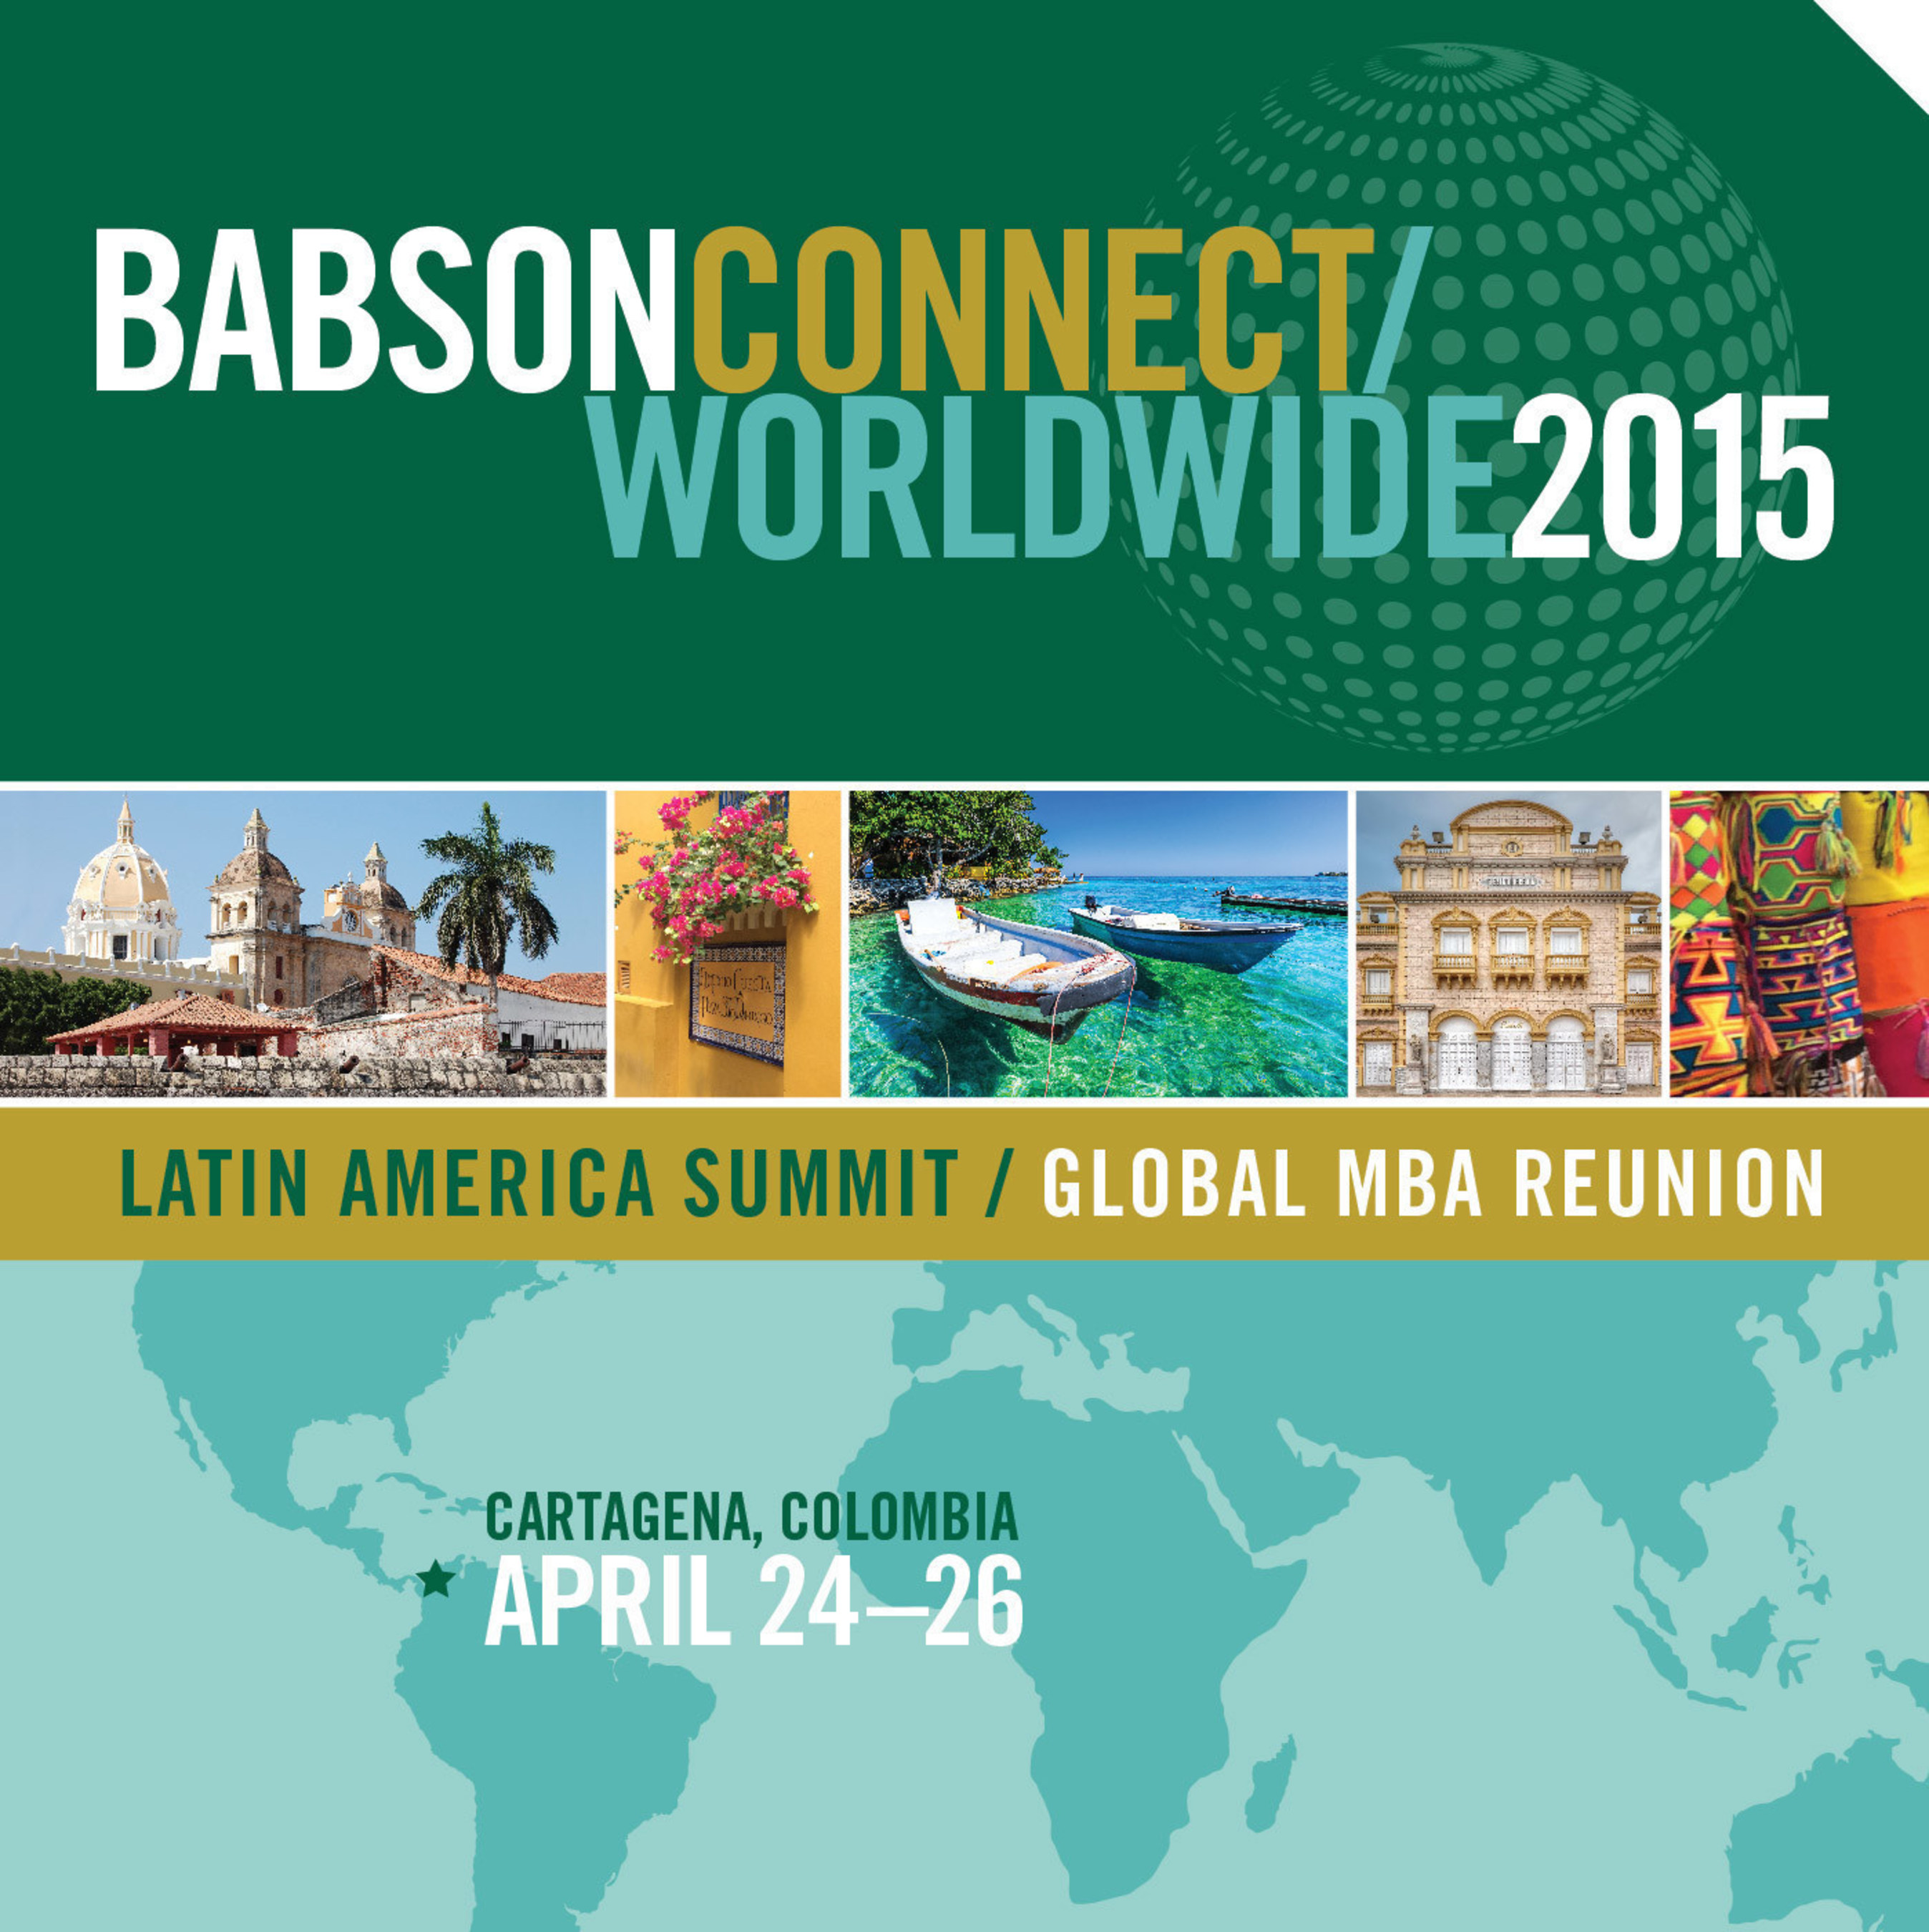 Babson College is hosting its inaugural Latin America Summit / Global Master of Business Administration Reunion -- Babson Connect: Worldwide -- an unprecedented opportunity for the global Babson community to gather and celebrate Entrepreneurship of All Kinds(R).   This global gathering is taking place April 24-26, 2015 in historic Cartagena, Colombia, a celebrated World Heritage city.